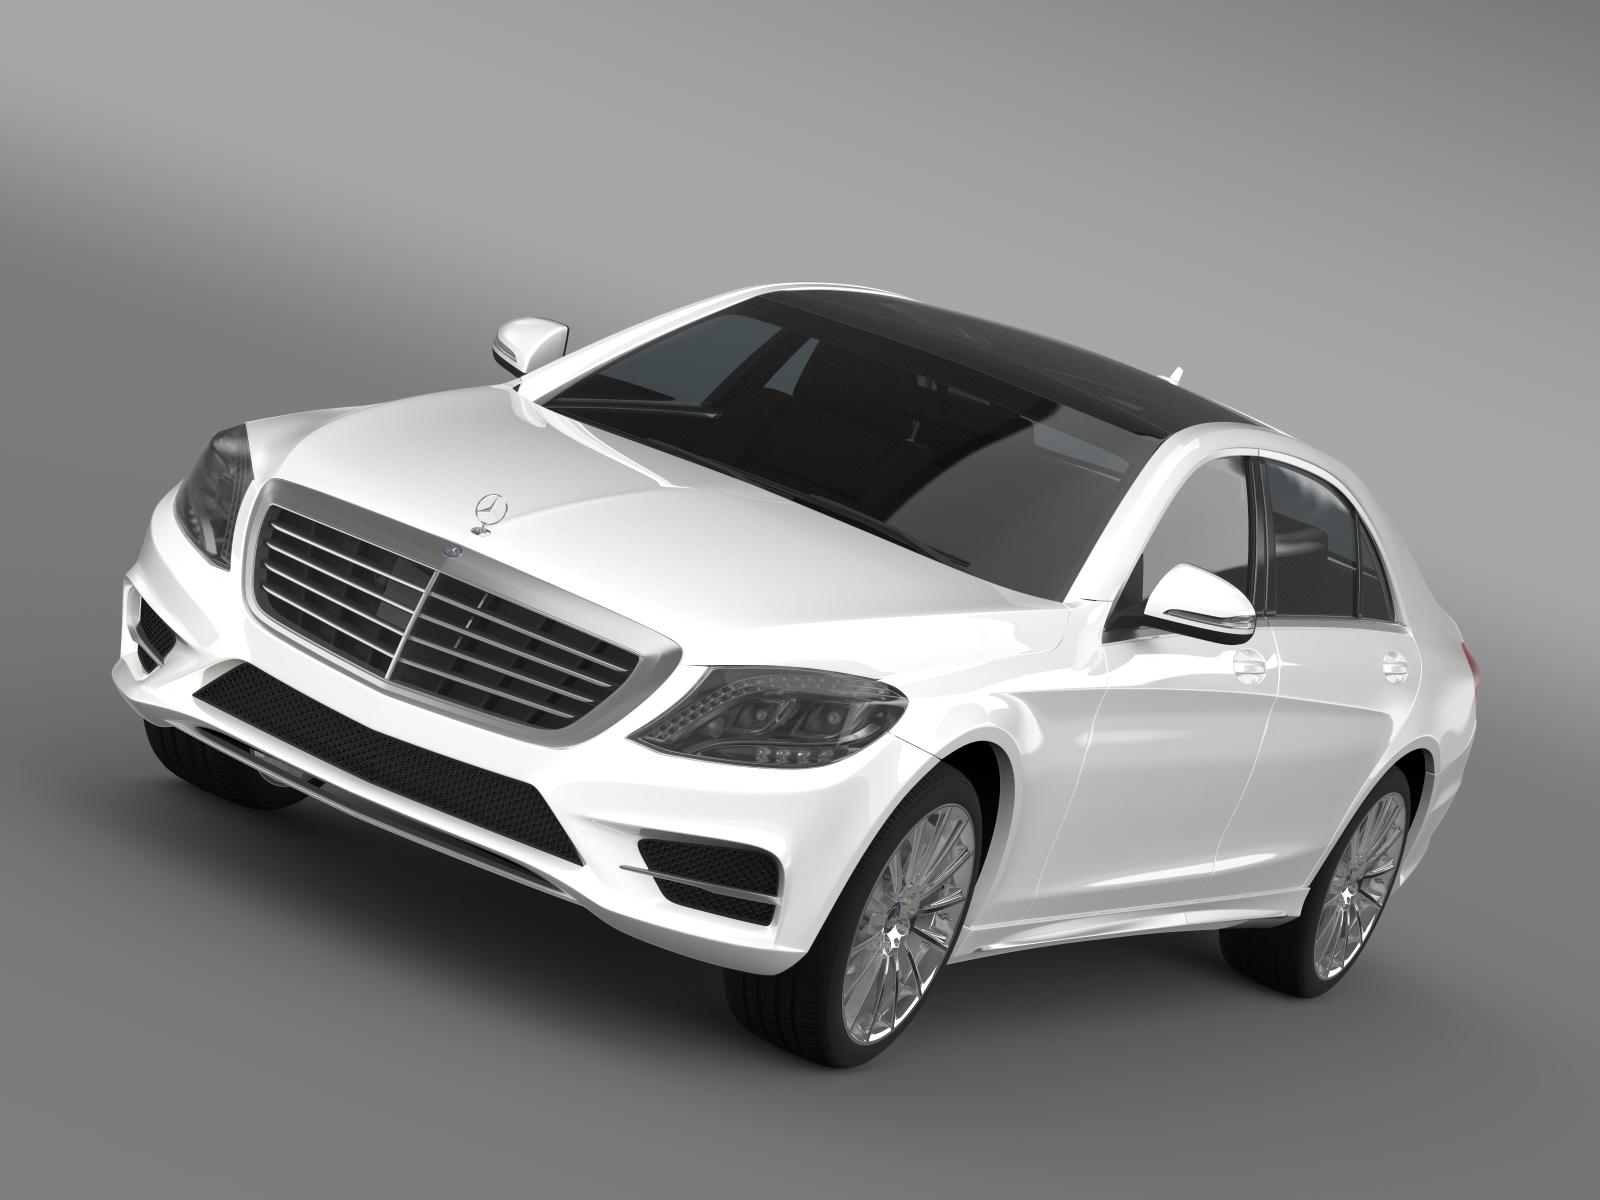 AMG Mercedes Benz S 500 Plug In Hybrid W222 2014 3d Model 3ds Max Fbx C4d